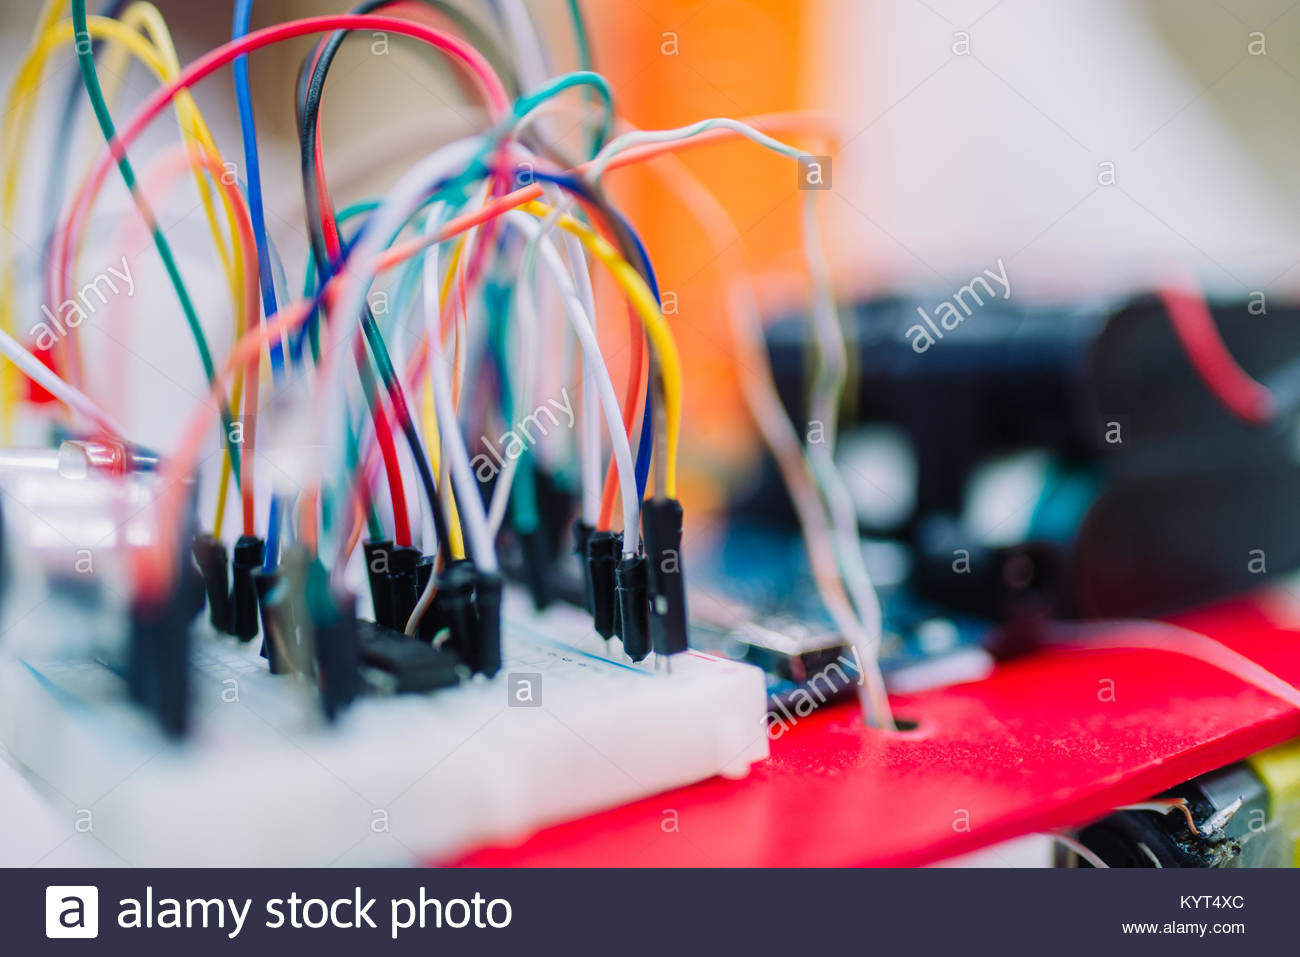 Electronics Breadboard Stockfotos & Electronics Breadboard Bilder ...